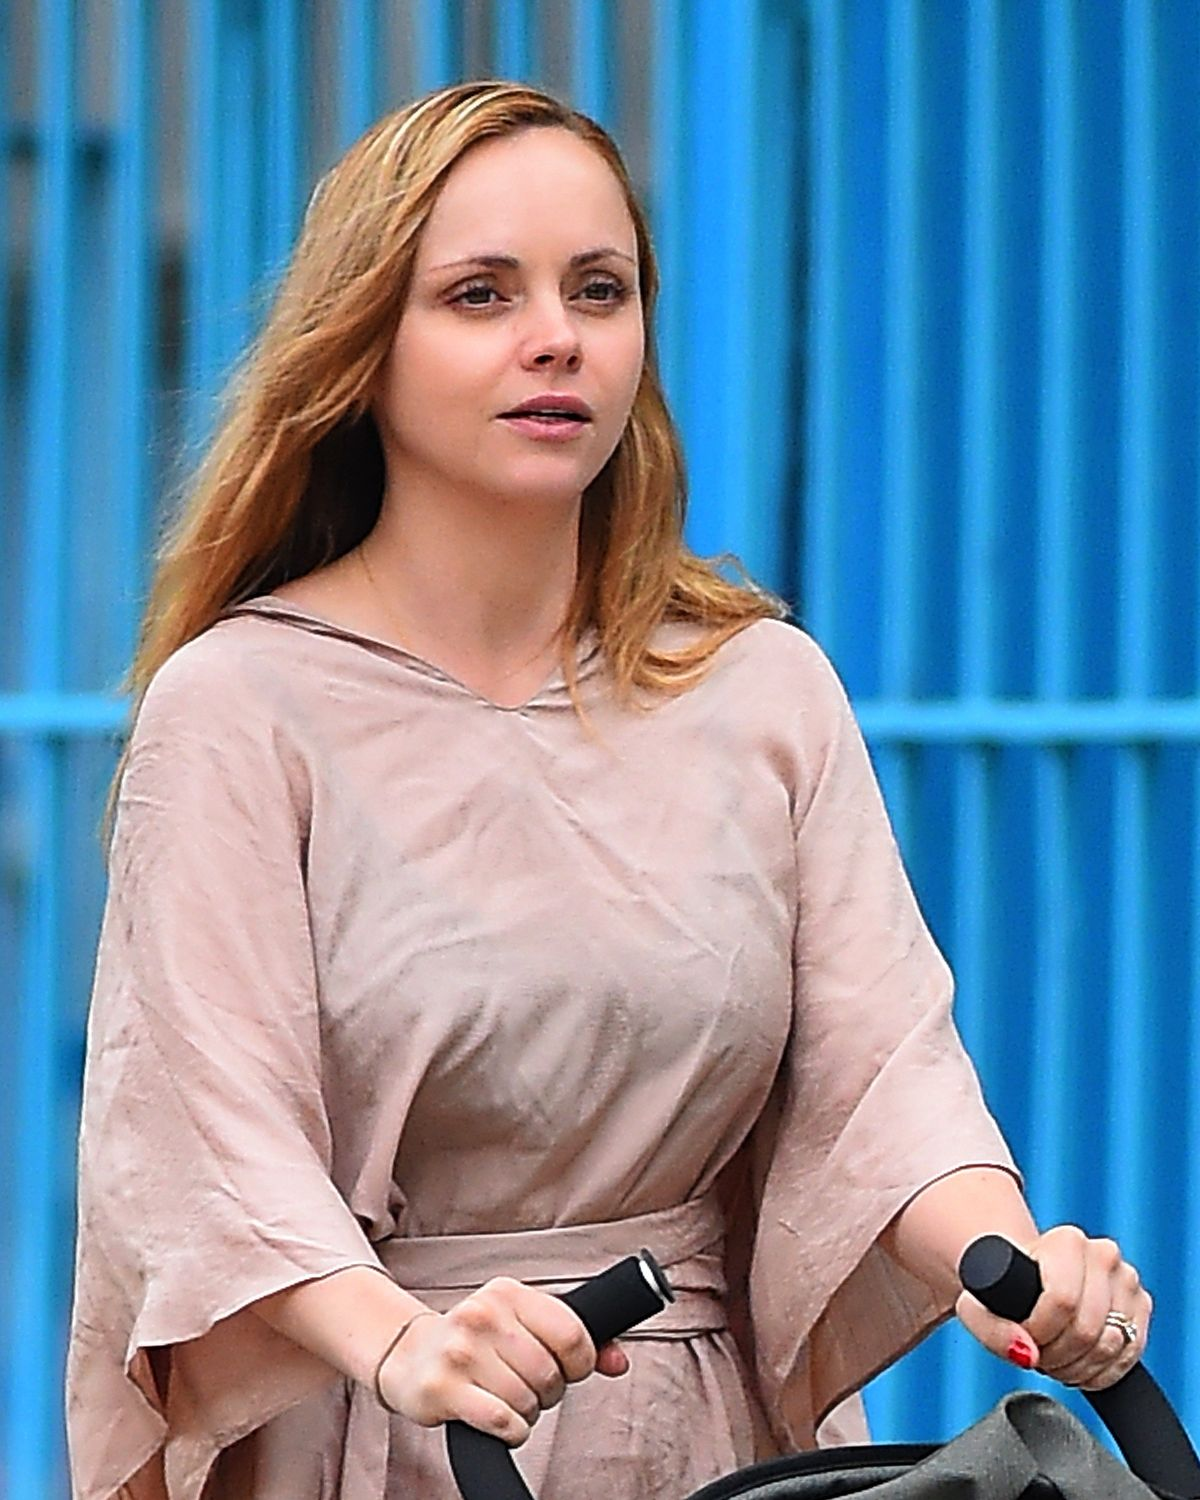 CHRISTINA RICCI Out and About in Brooklyn 05/18/2015 Christina Ricci